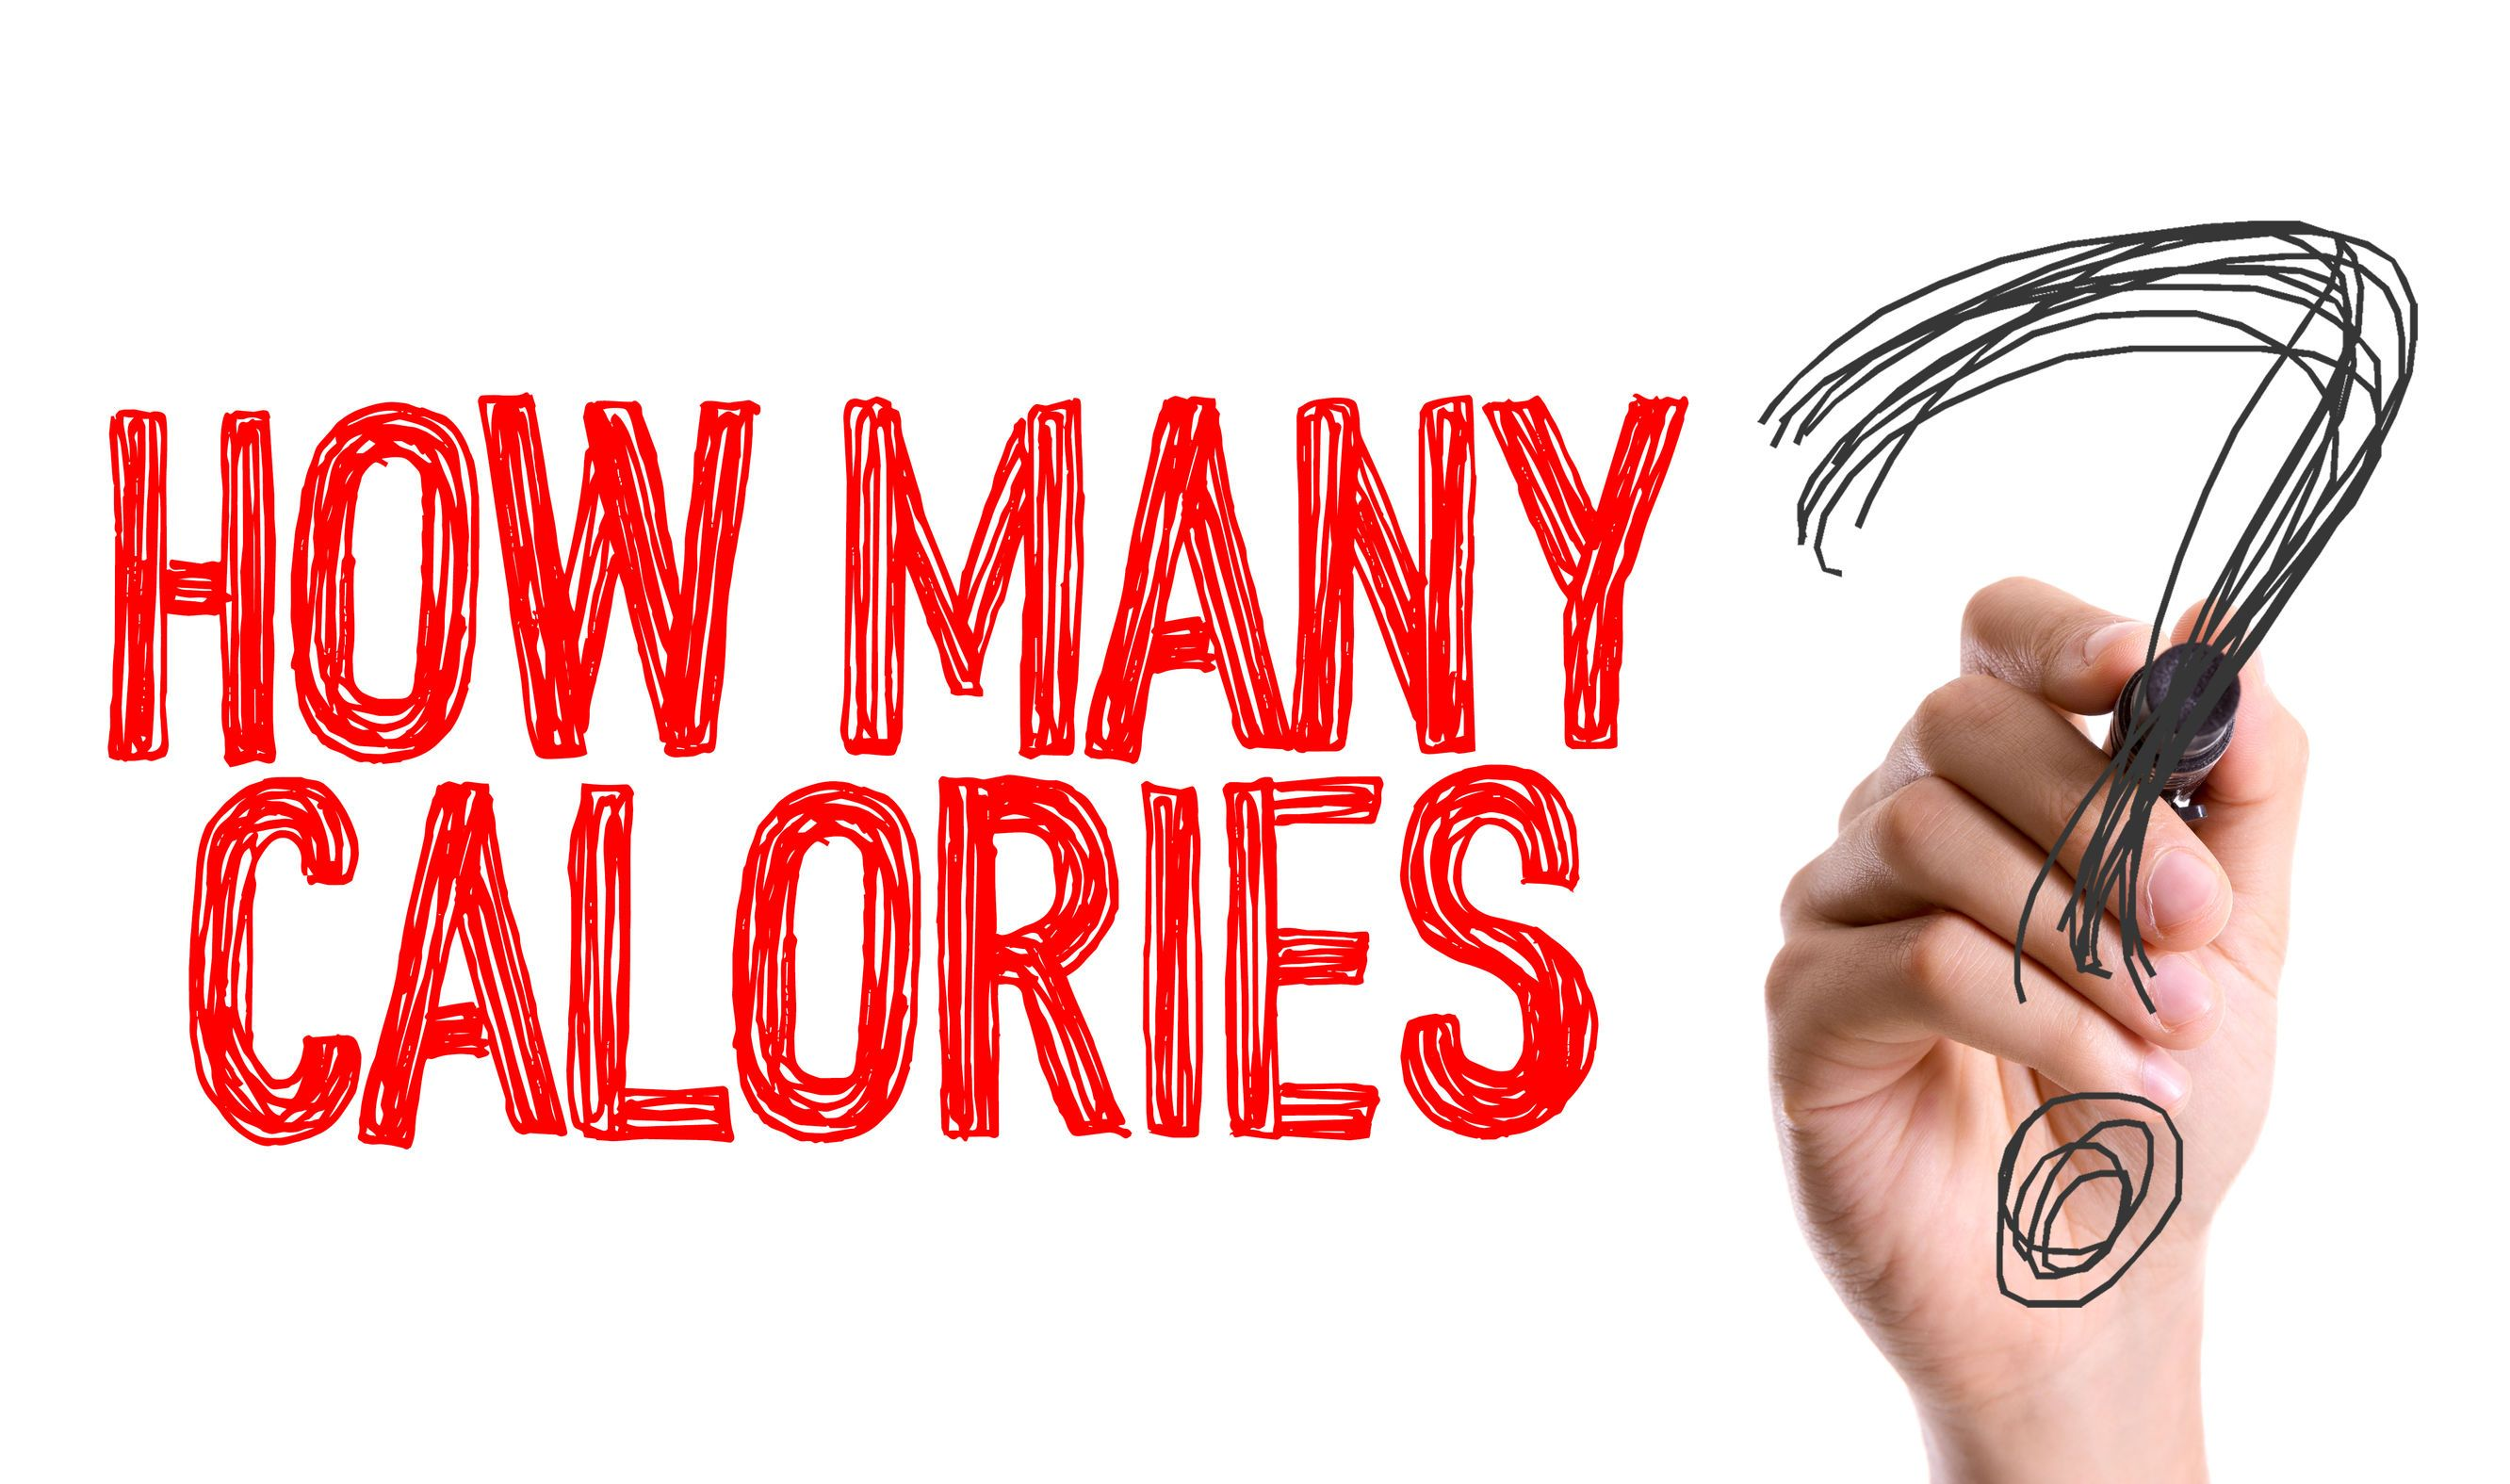 Reduce Calories you Consume